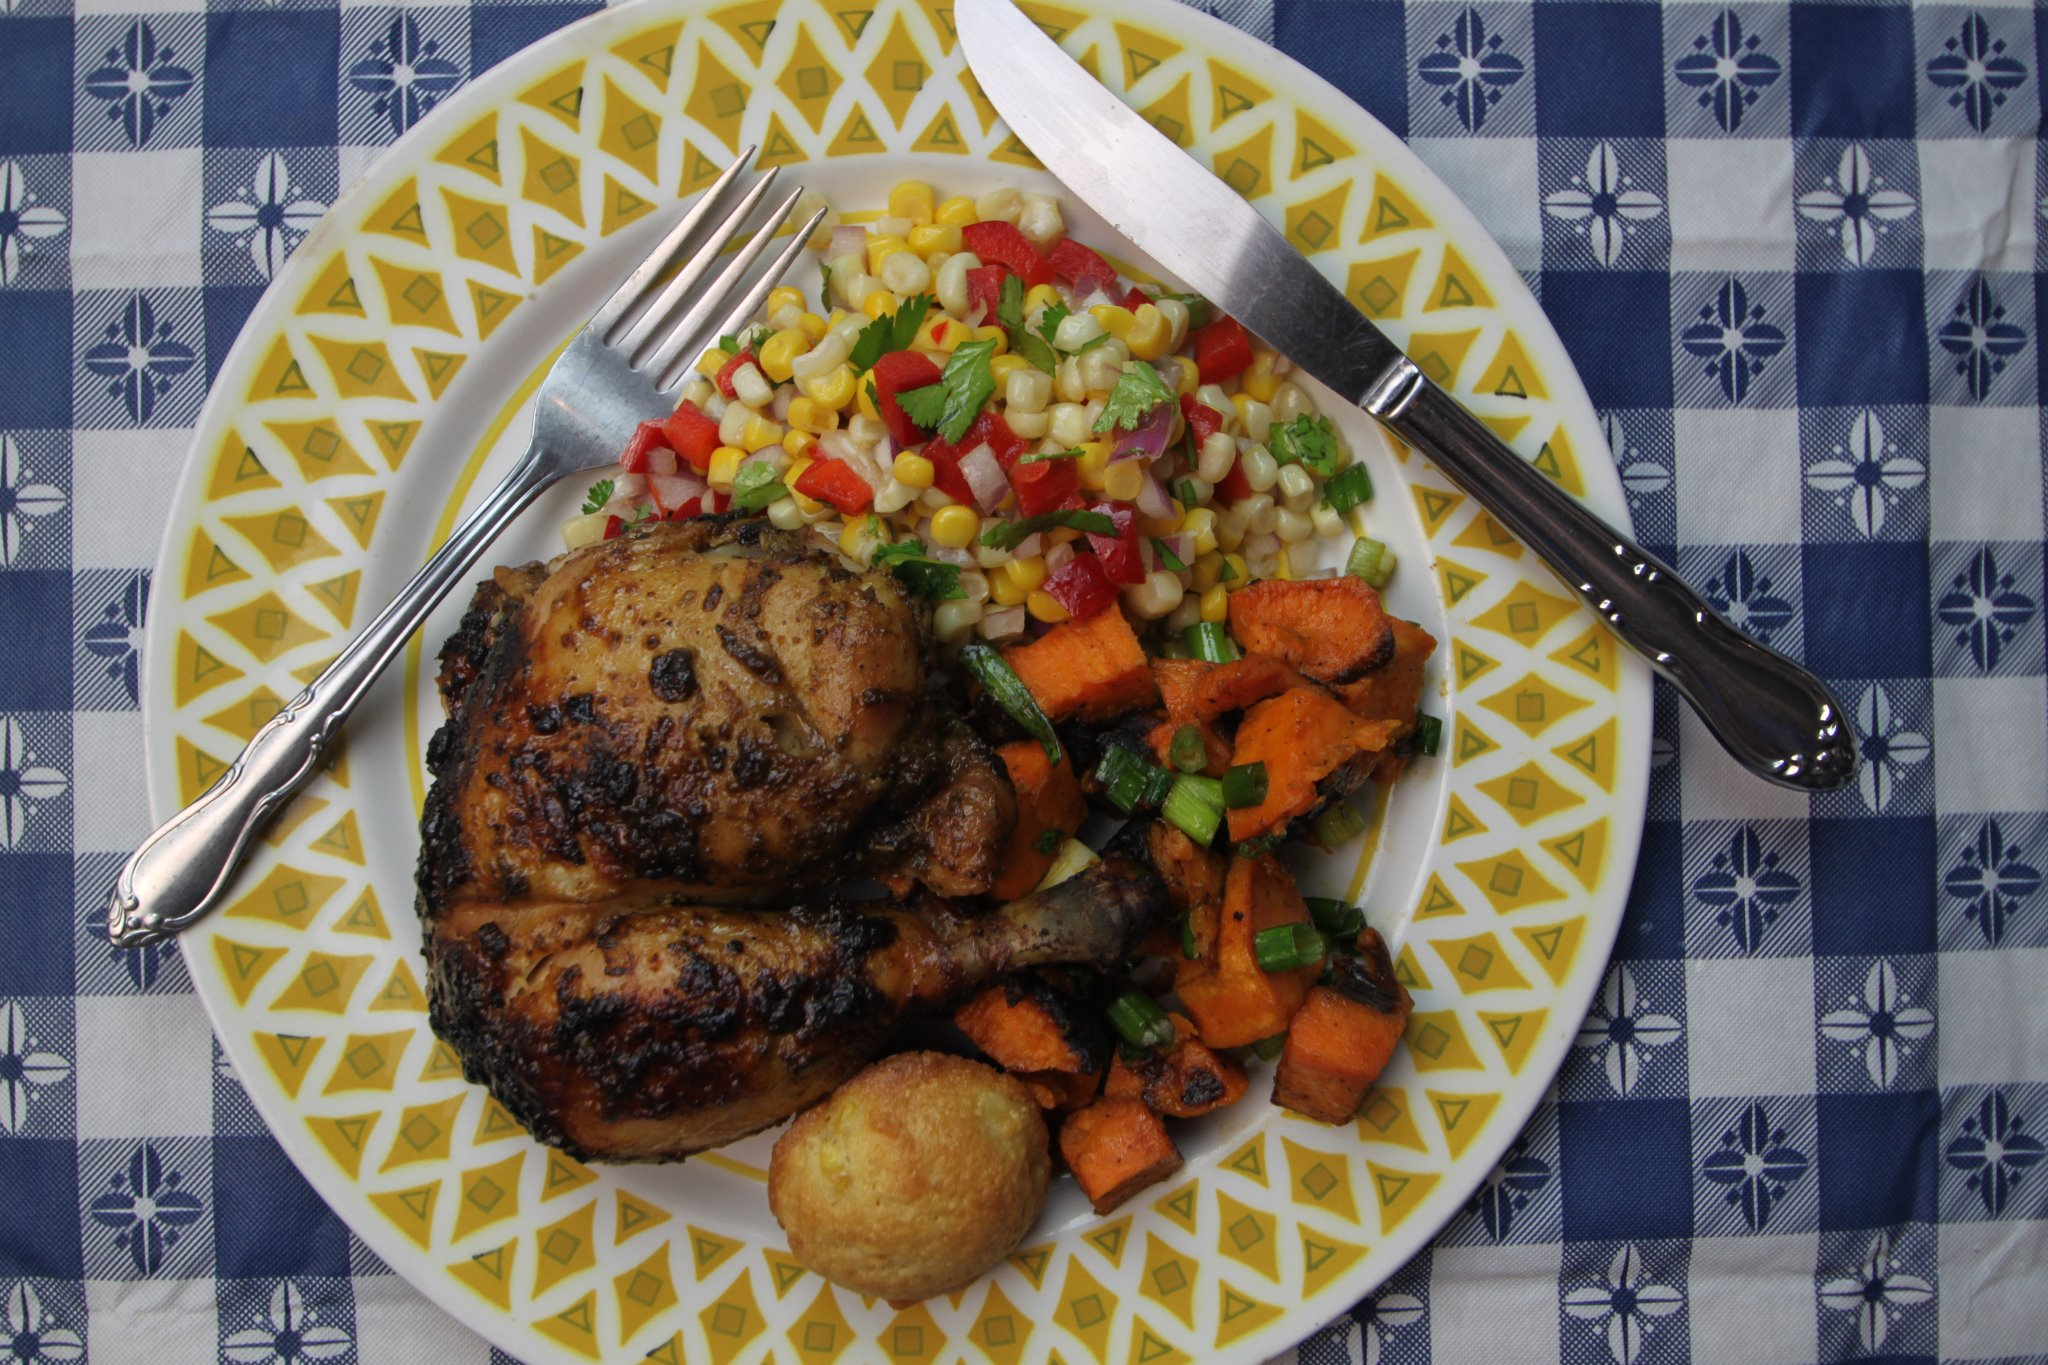 A top-down view of roasted chicken with sides of sweet potato, corn salad, and cornbread.